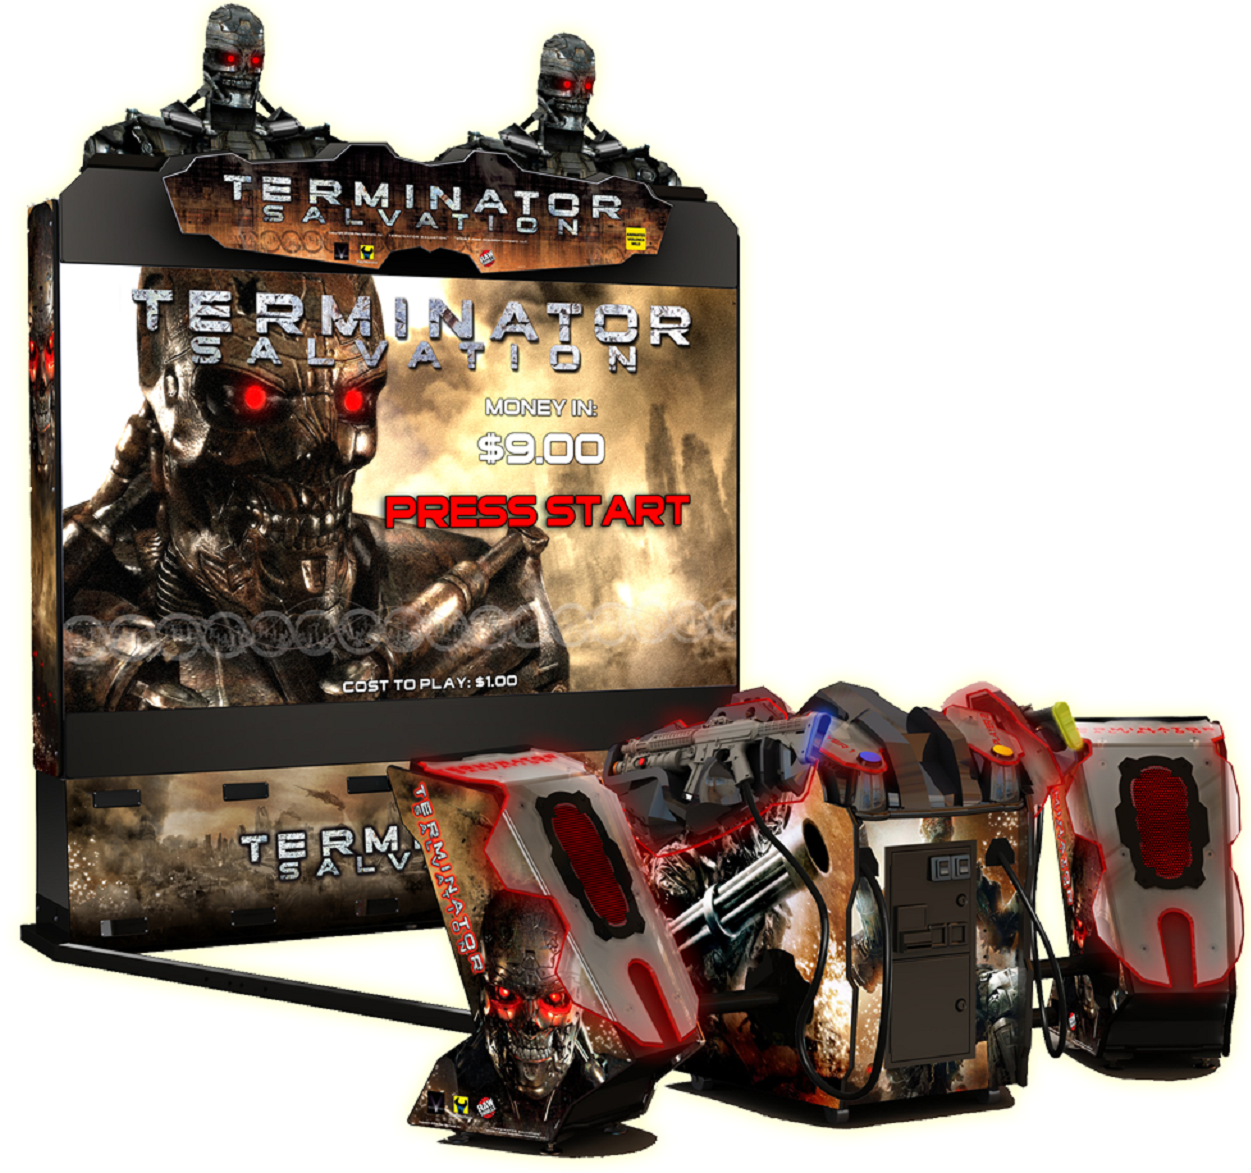 Terminator Salvation | 8 Coolest Games You Could Only Play in Arcades | Gammicks